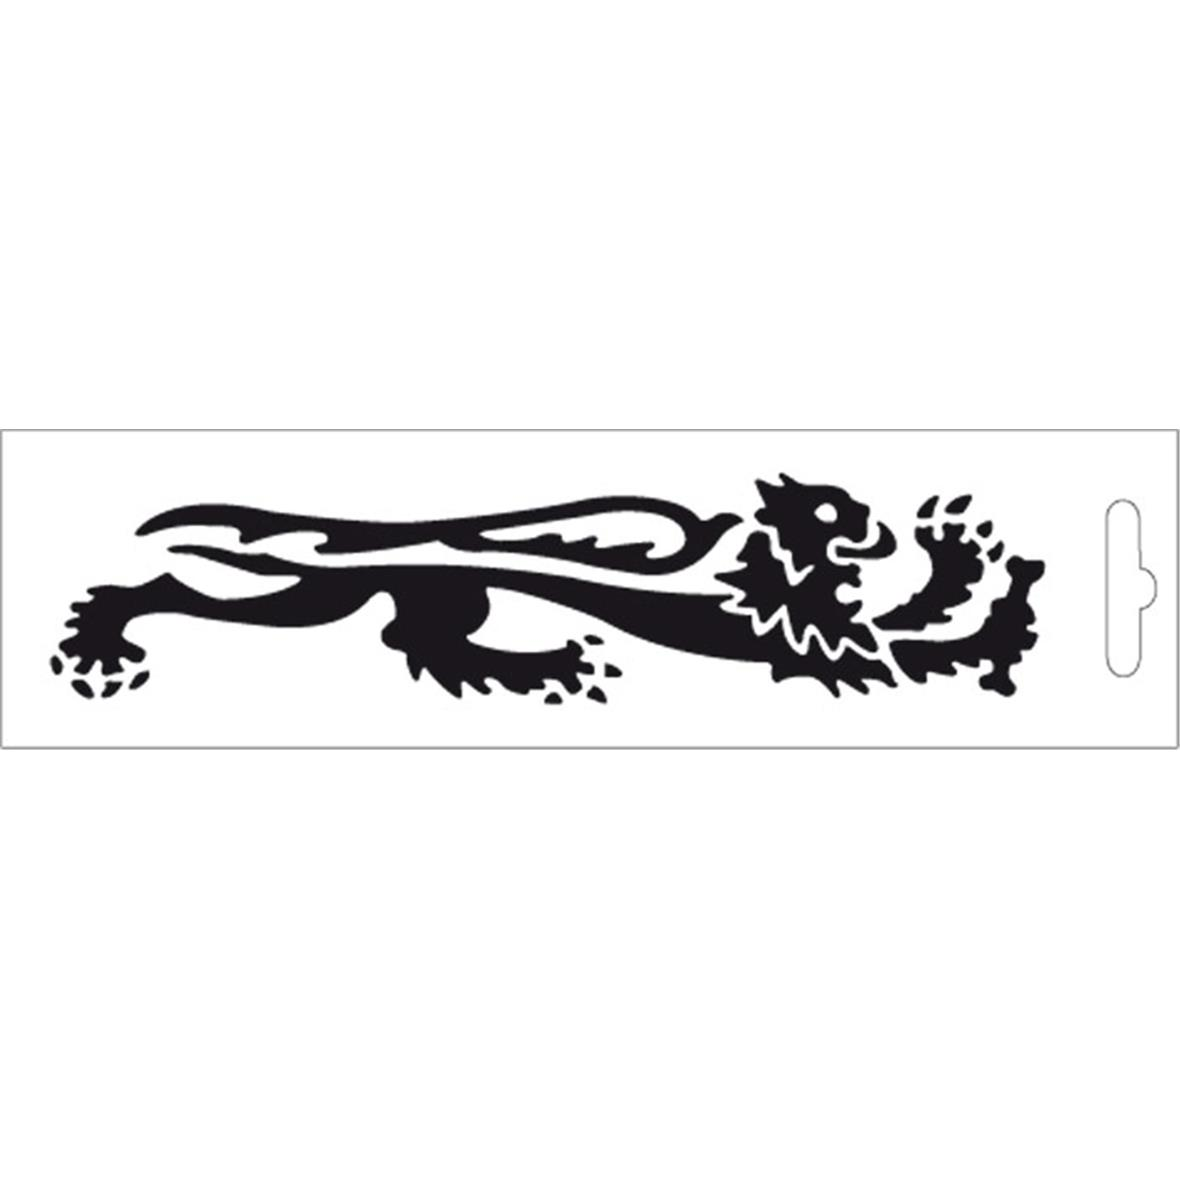 Product Image for 'BLACK LION STICKER - RIGHT 16,6 cmTitle'